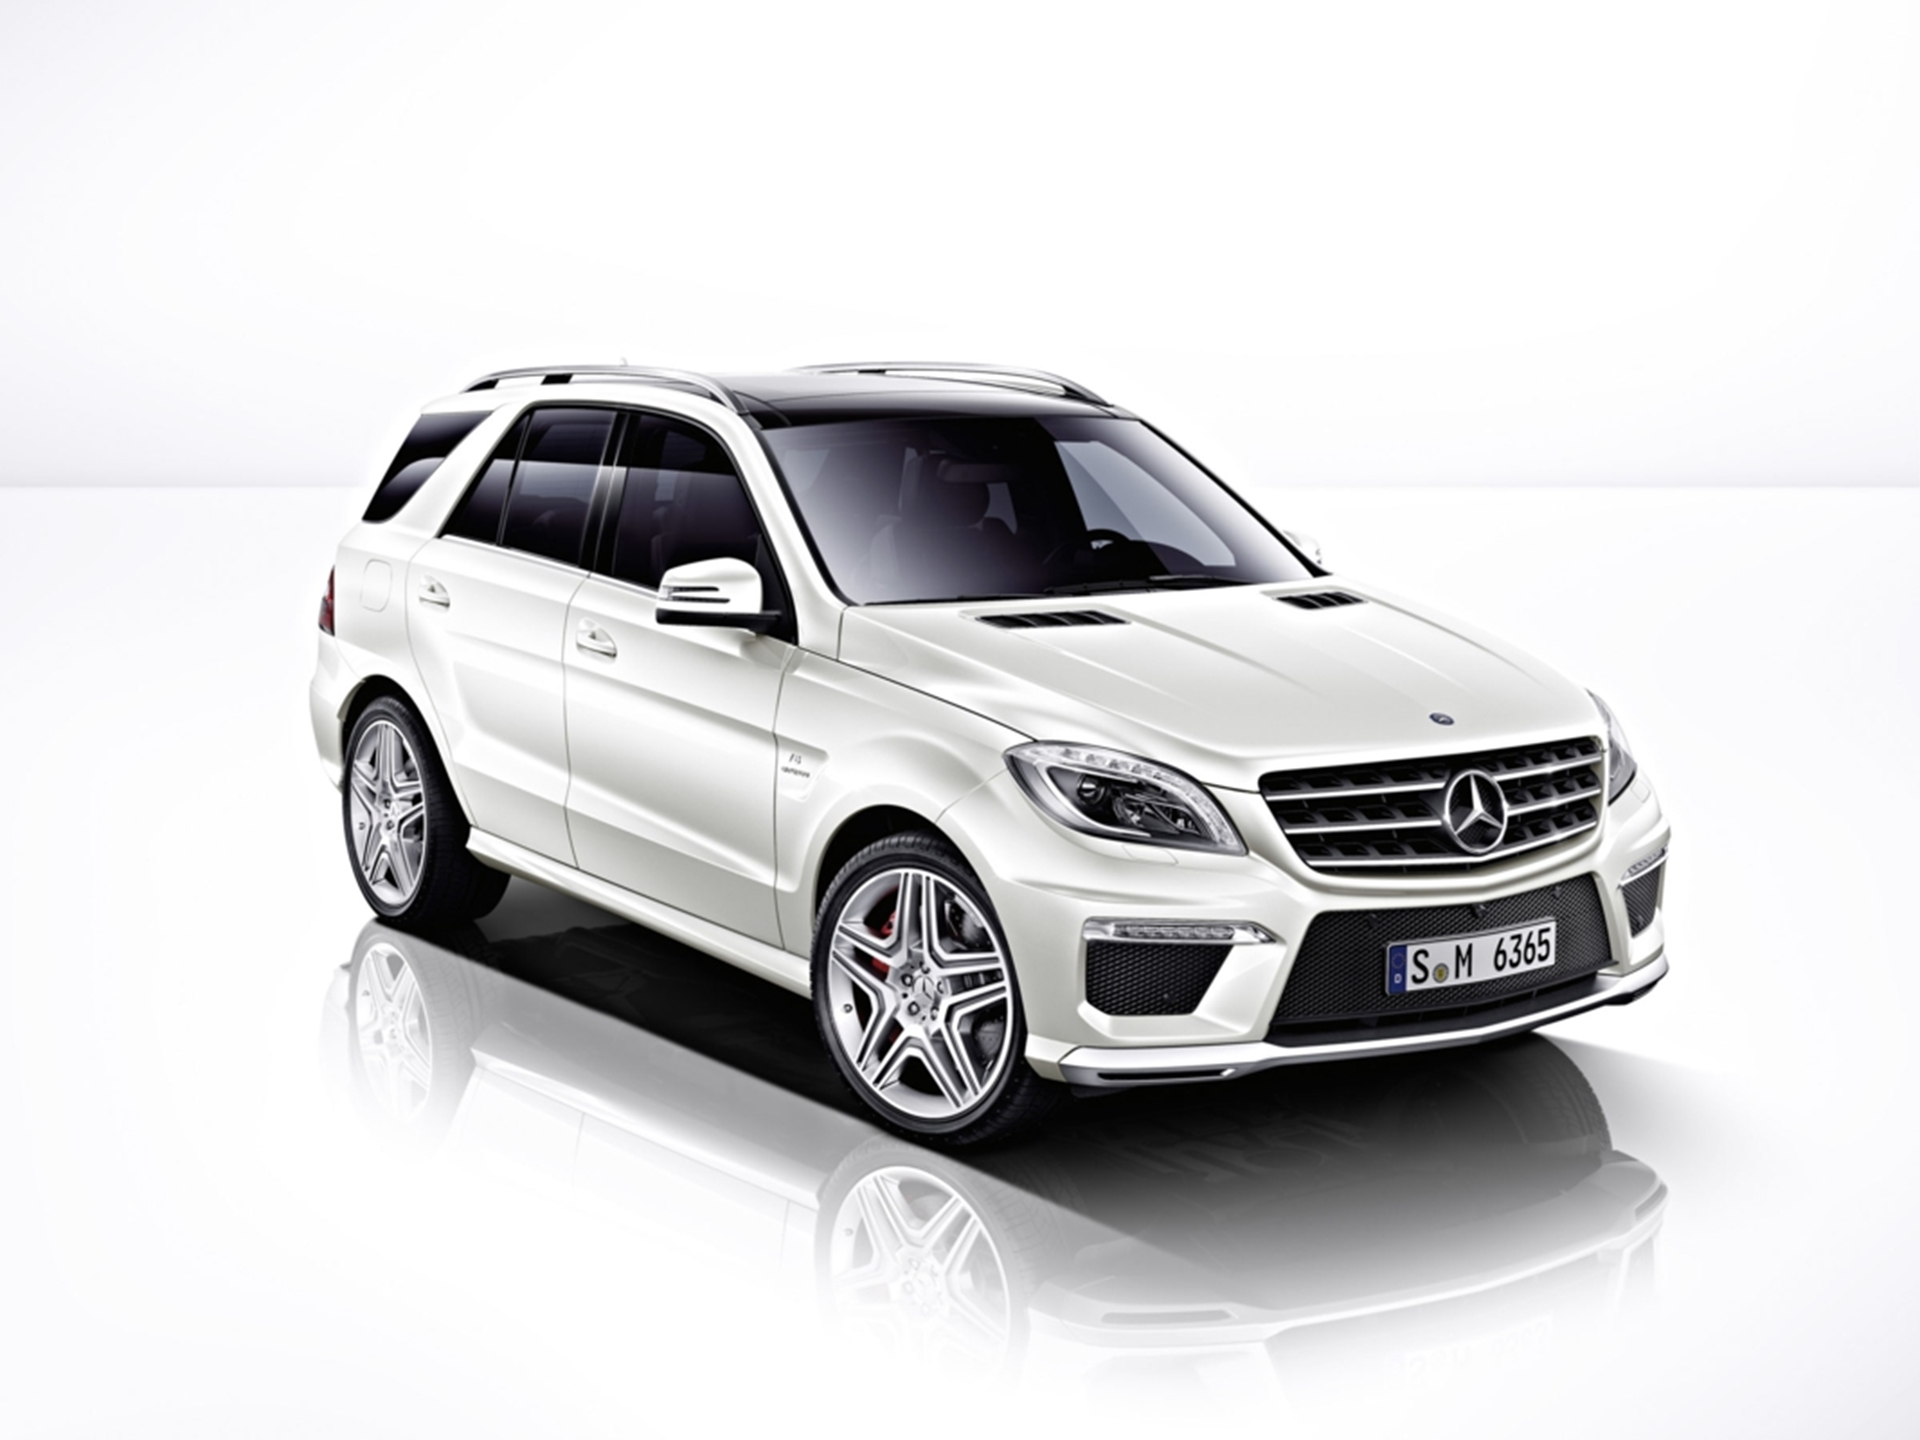 Mercedes-Benz ML 63 AMG 2012 South Africa